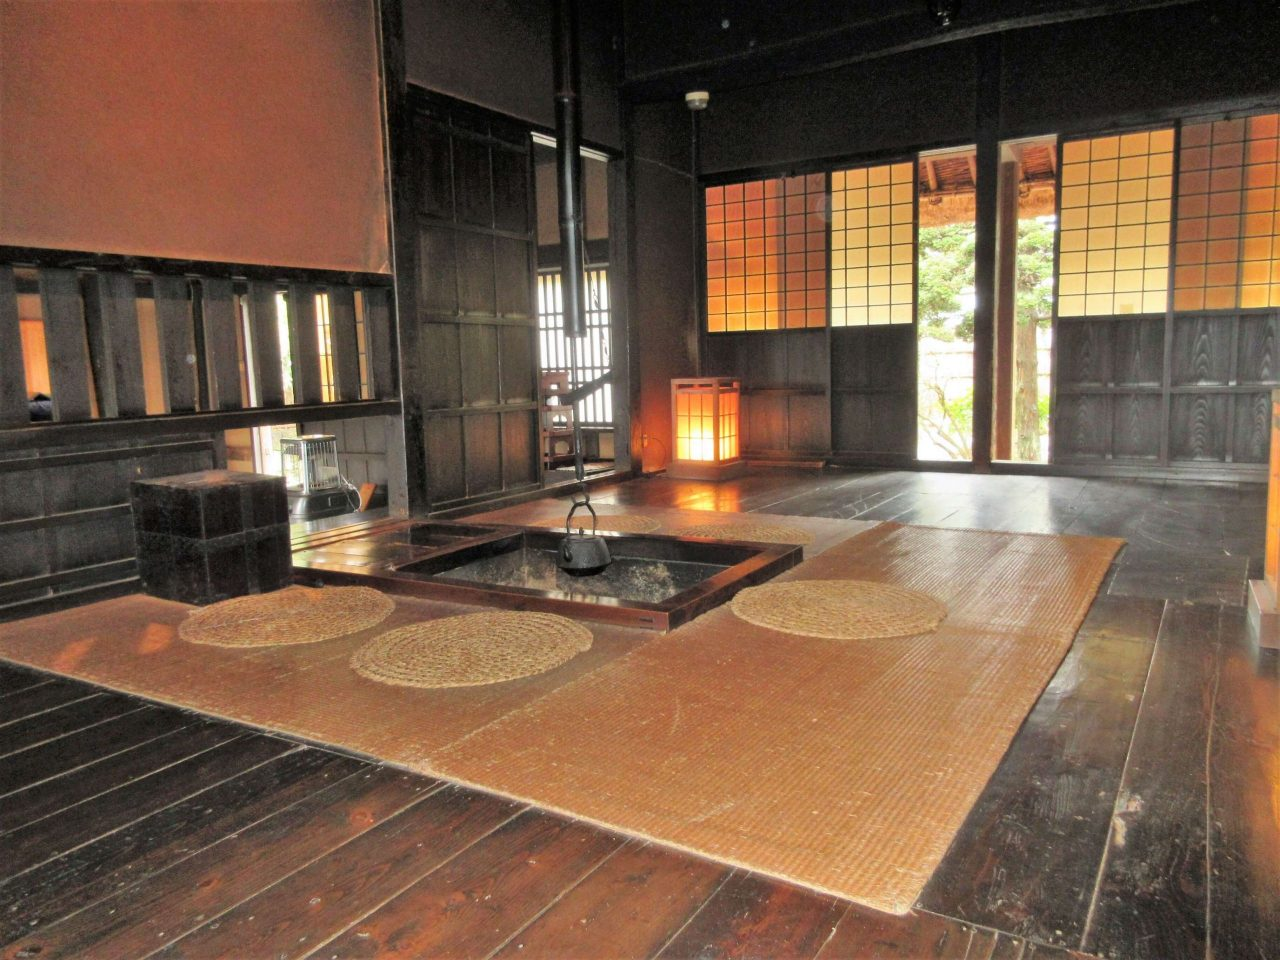 【Buke Yashiki】Many seasonal events are held at this place. This places is famous in connection with Katakura Family.